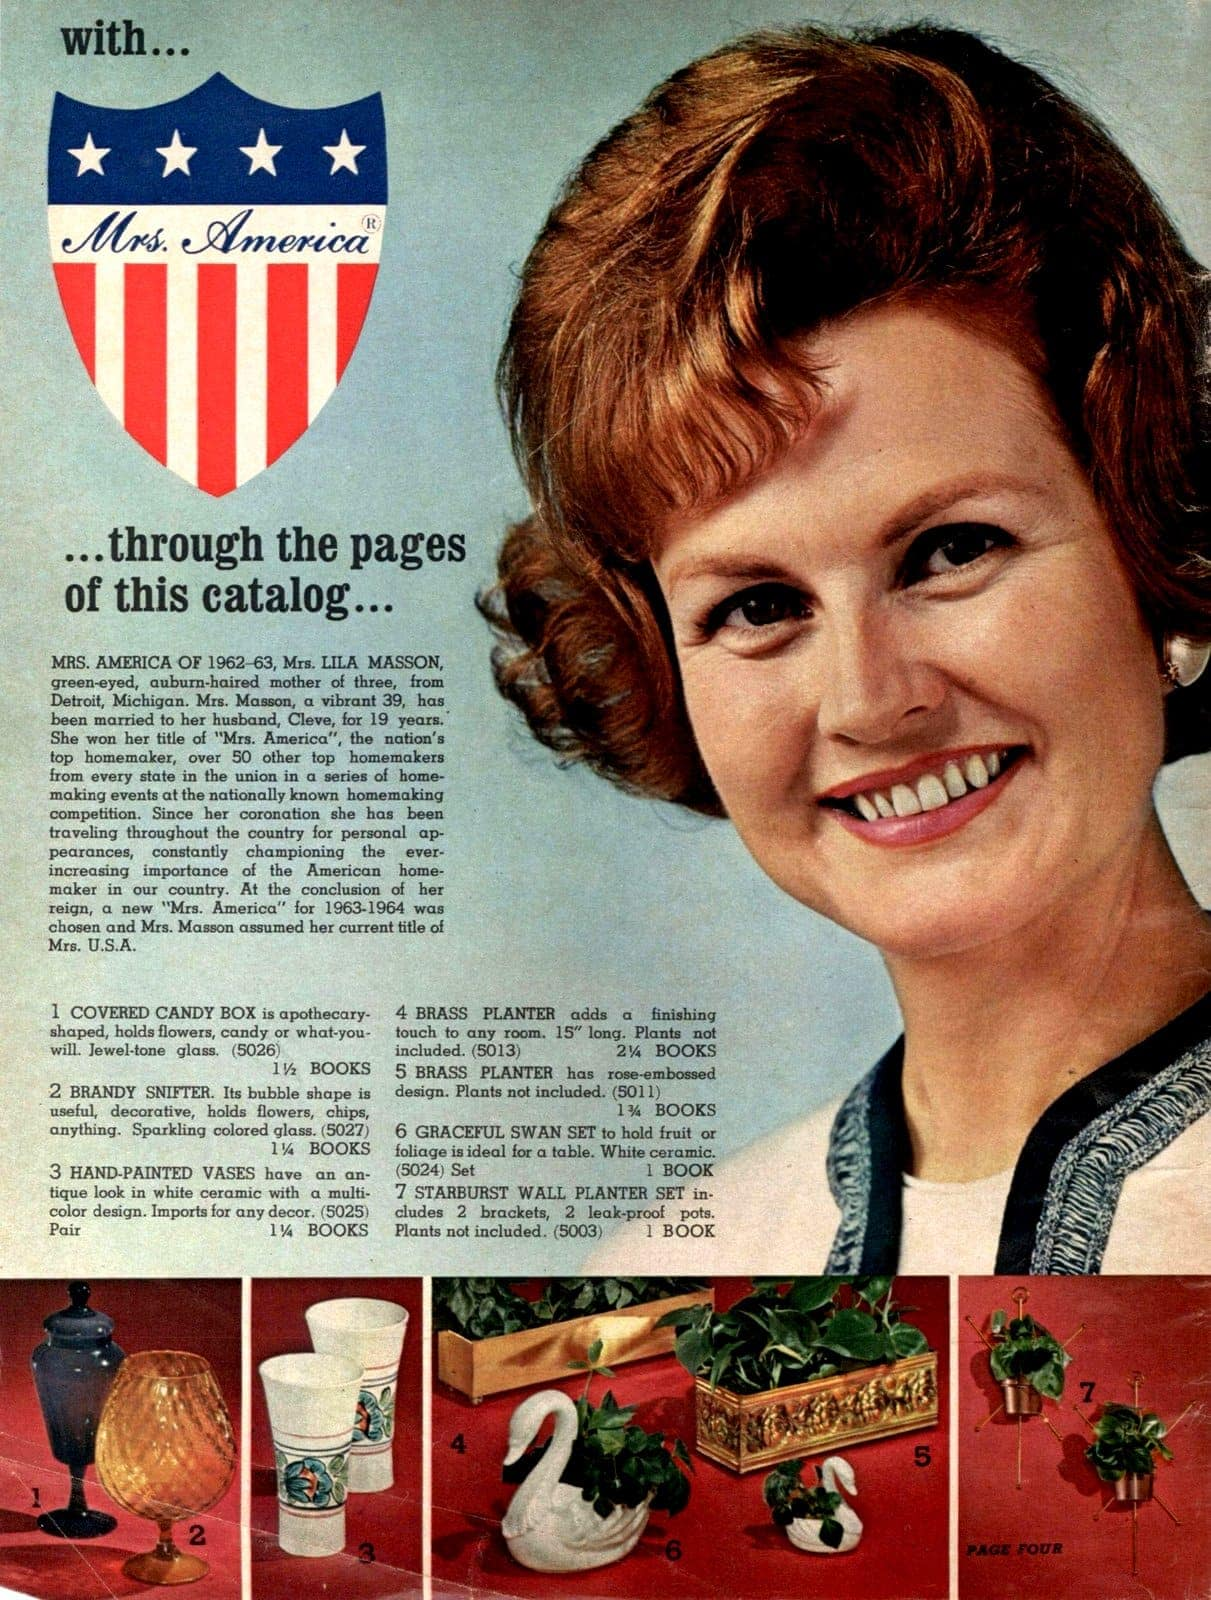 Mrs America introduces the catalog - and shows brandy snifters, vases, planters, and other home accessories